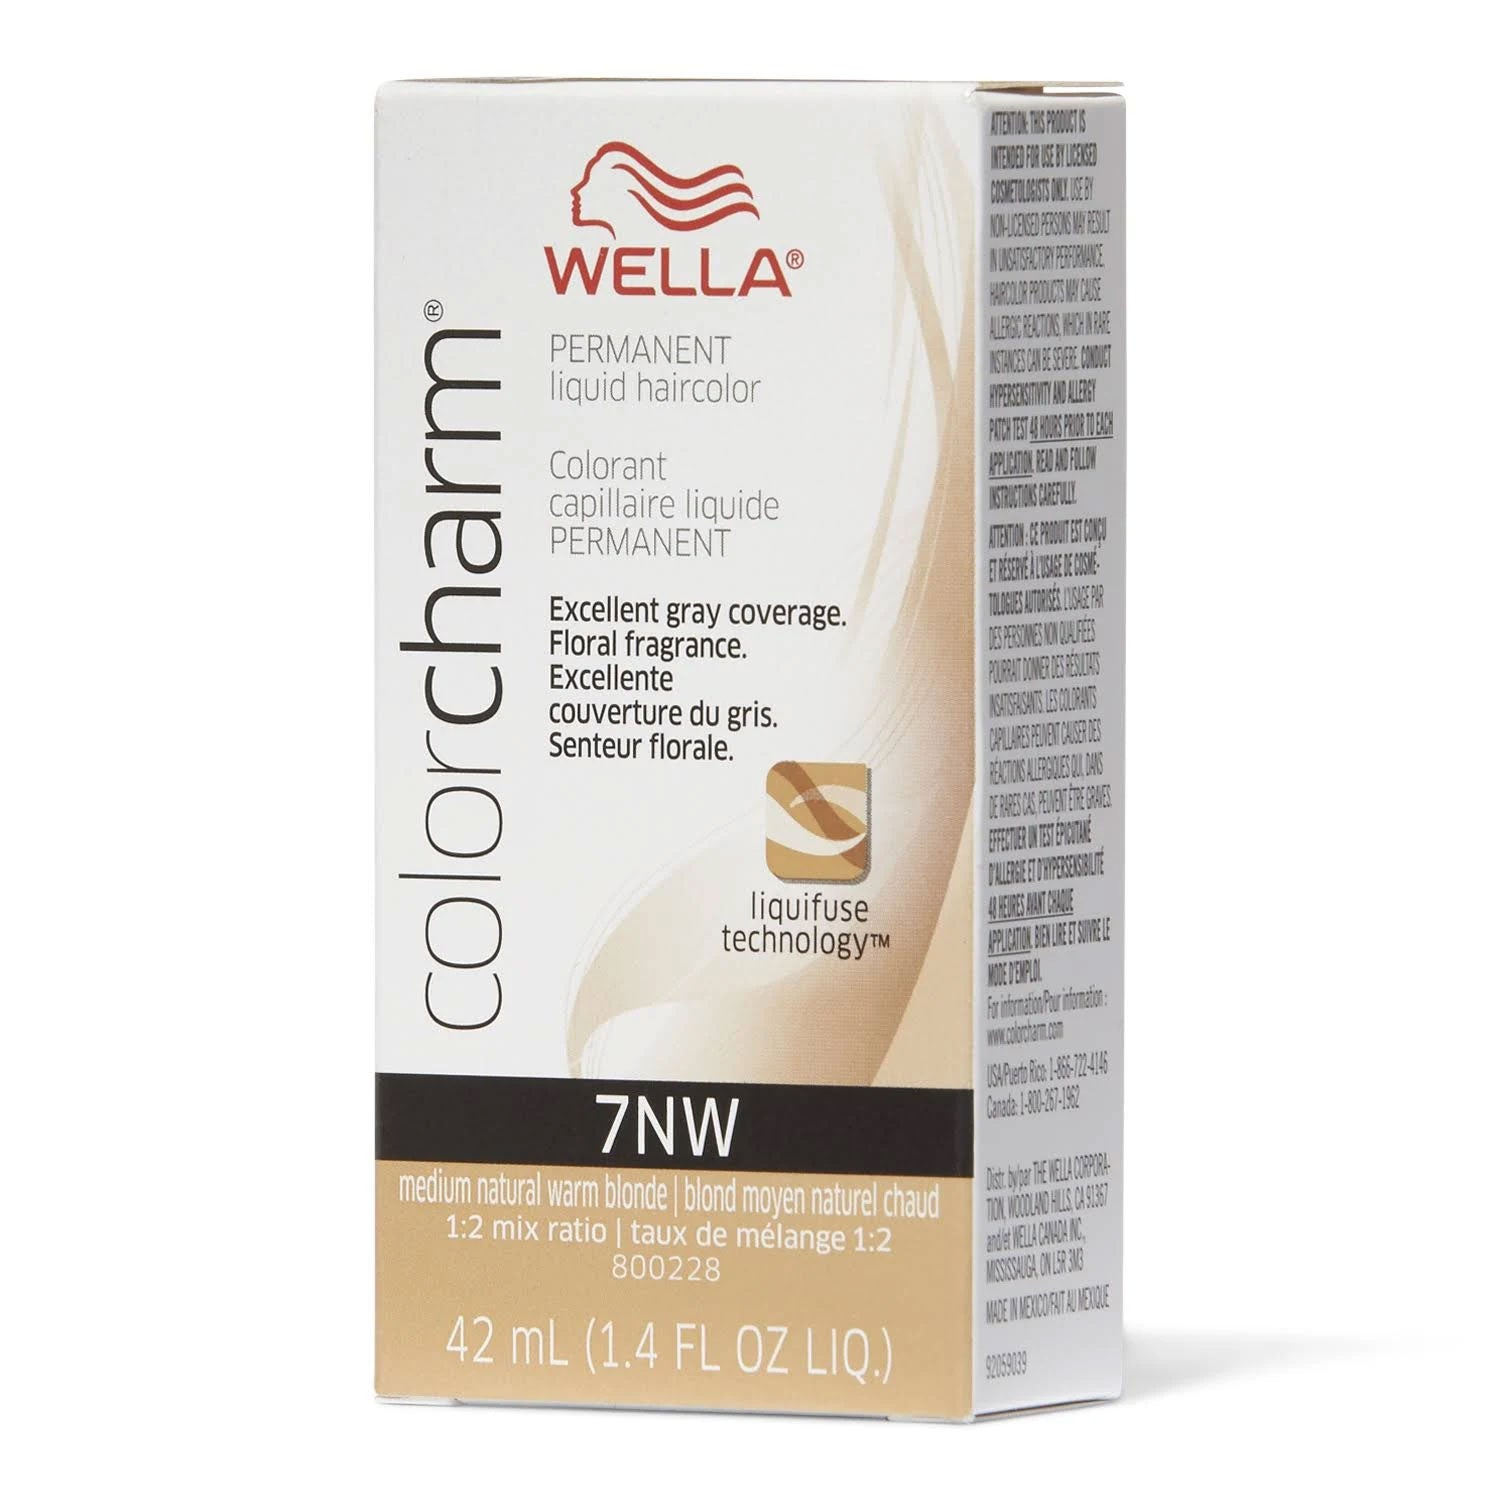 Wella Color Charm Permanent Liquid Haircolor, 7NW Medium Natural Warm Blonde, 1.4 Oz.